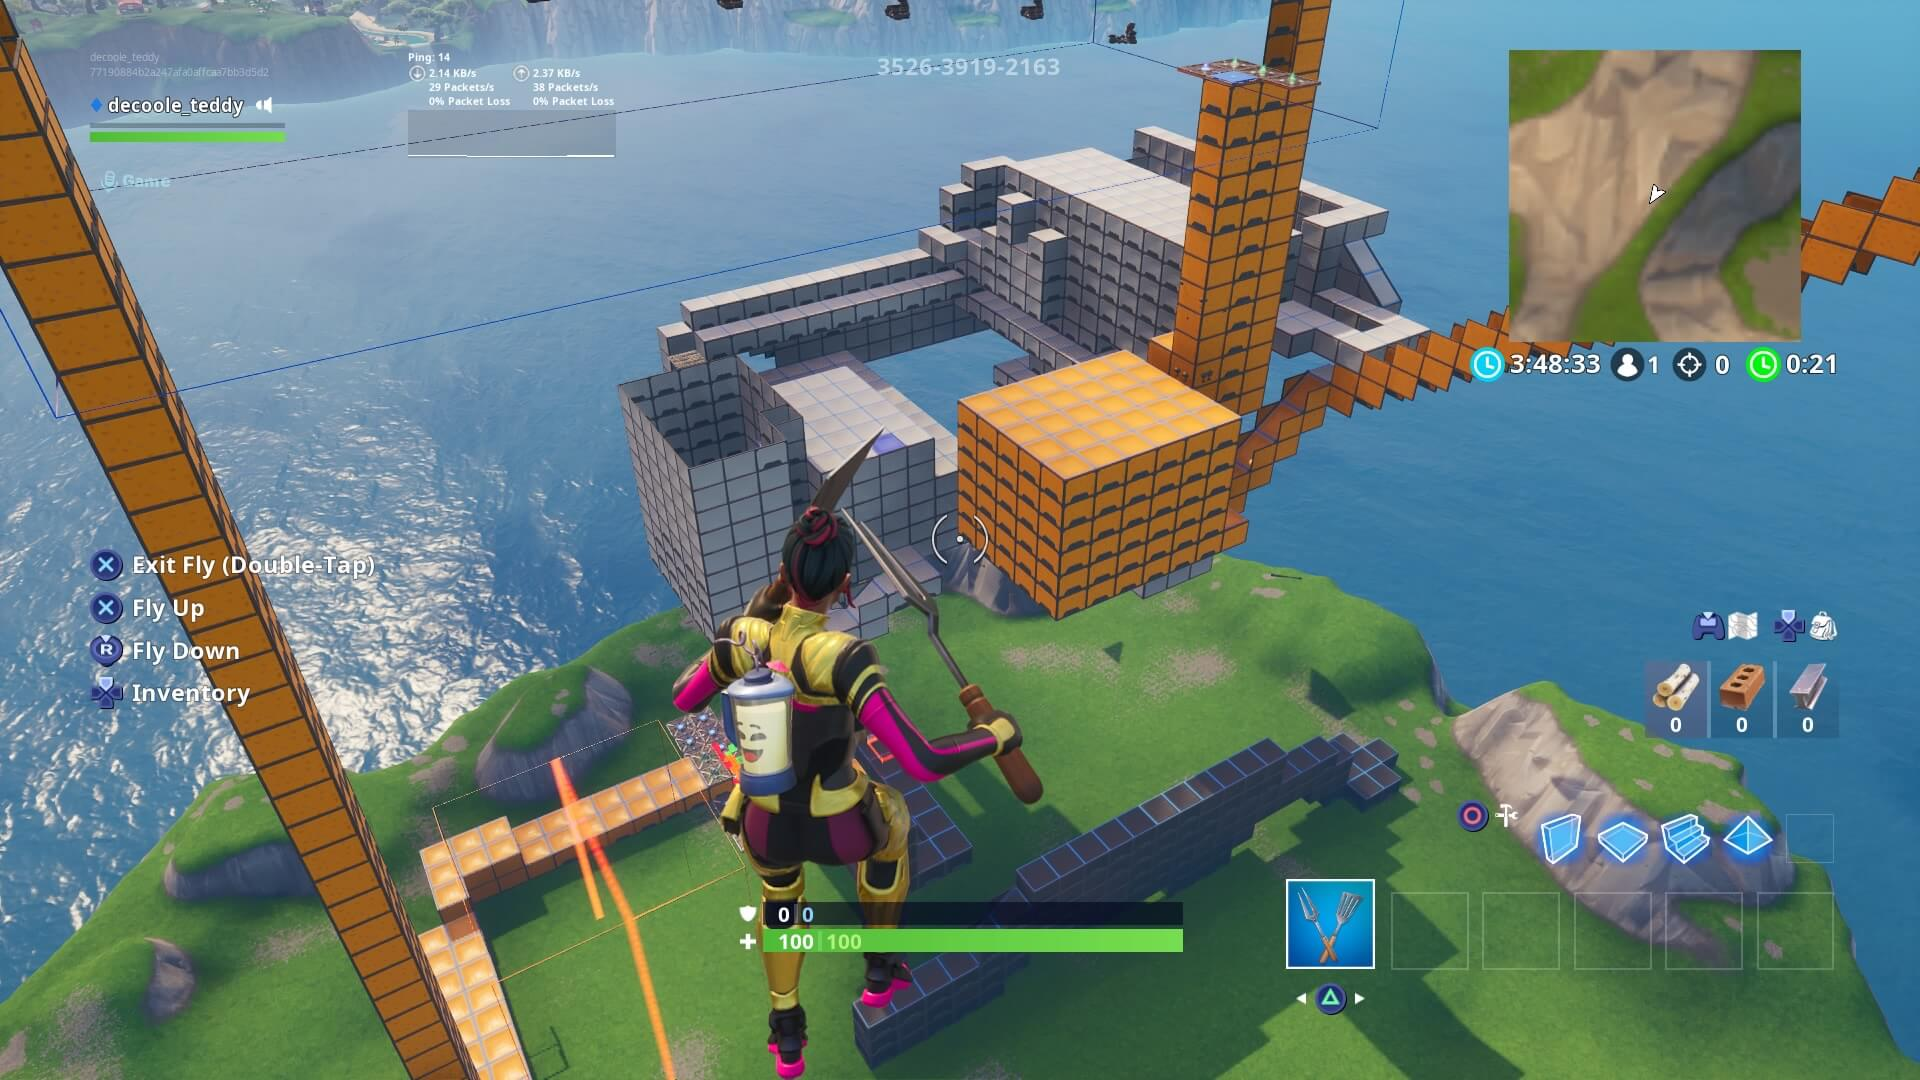 Fortnite Parkour Map Codes - Fortnite Creative Codes